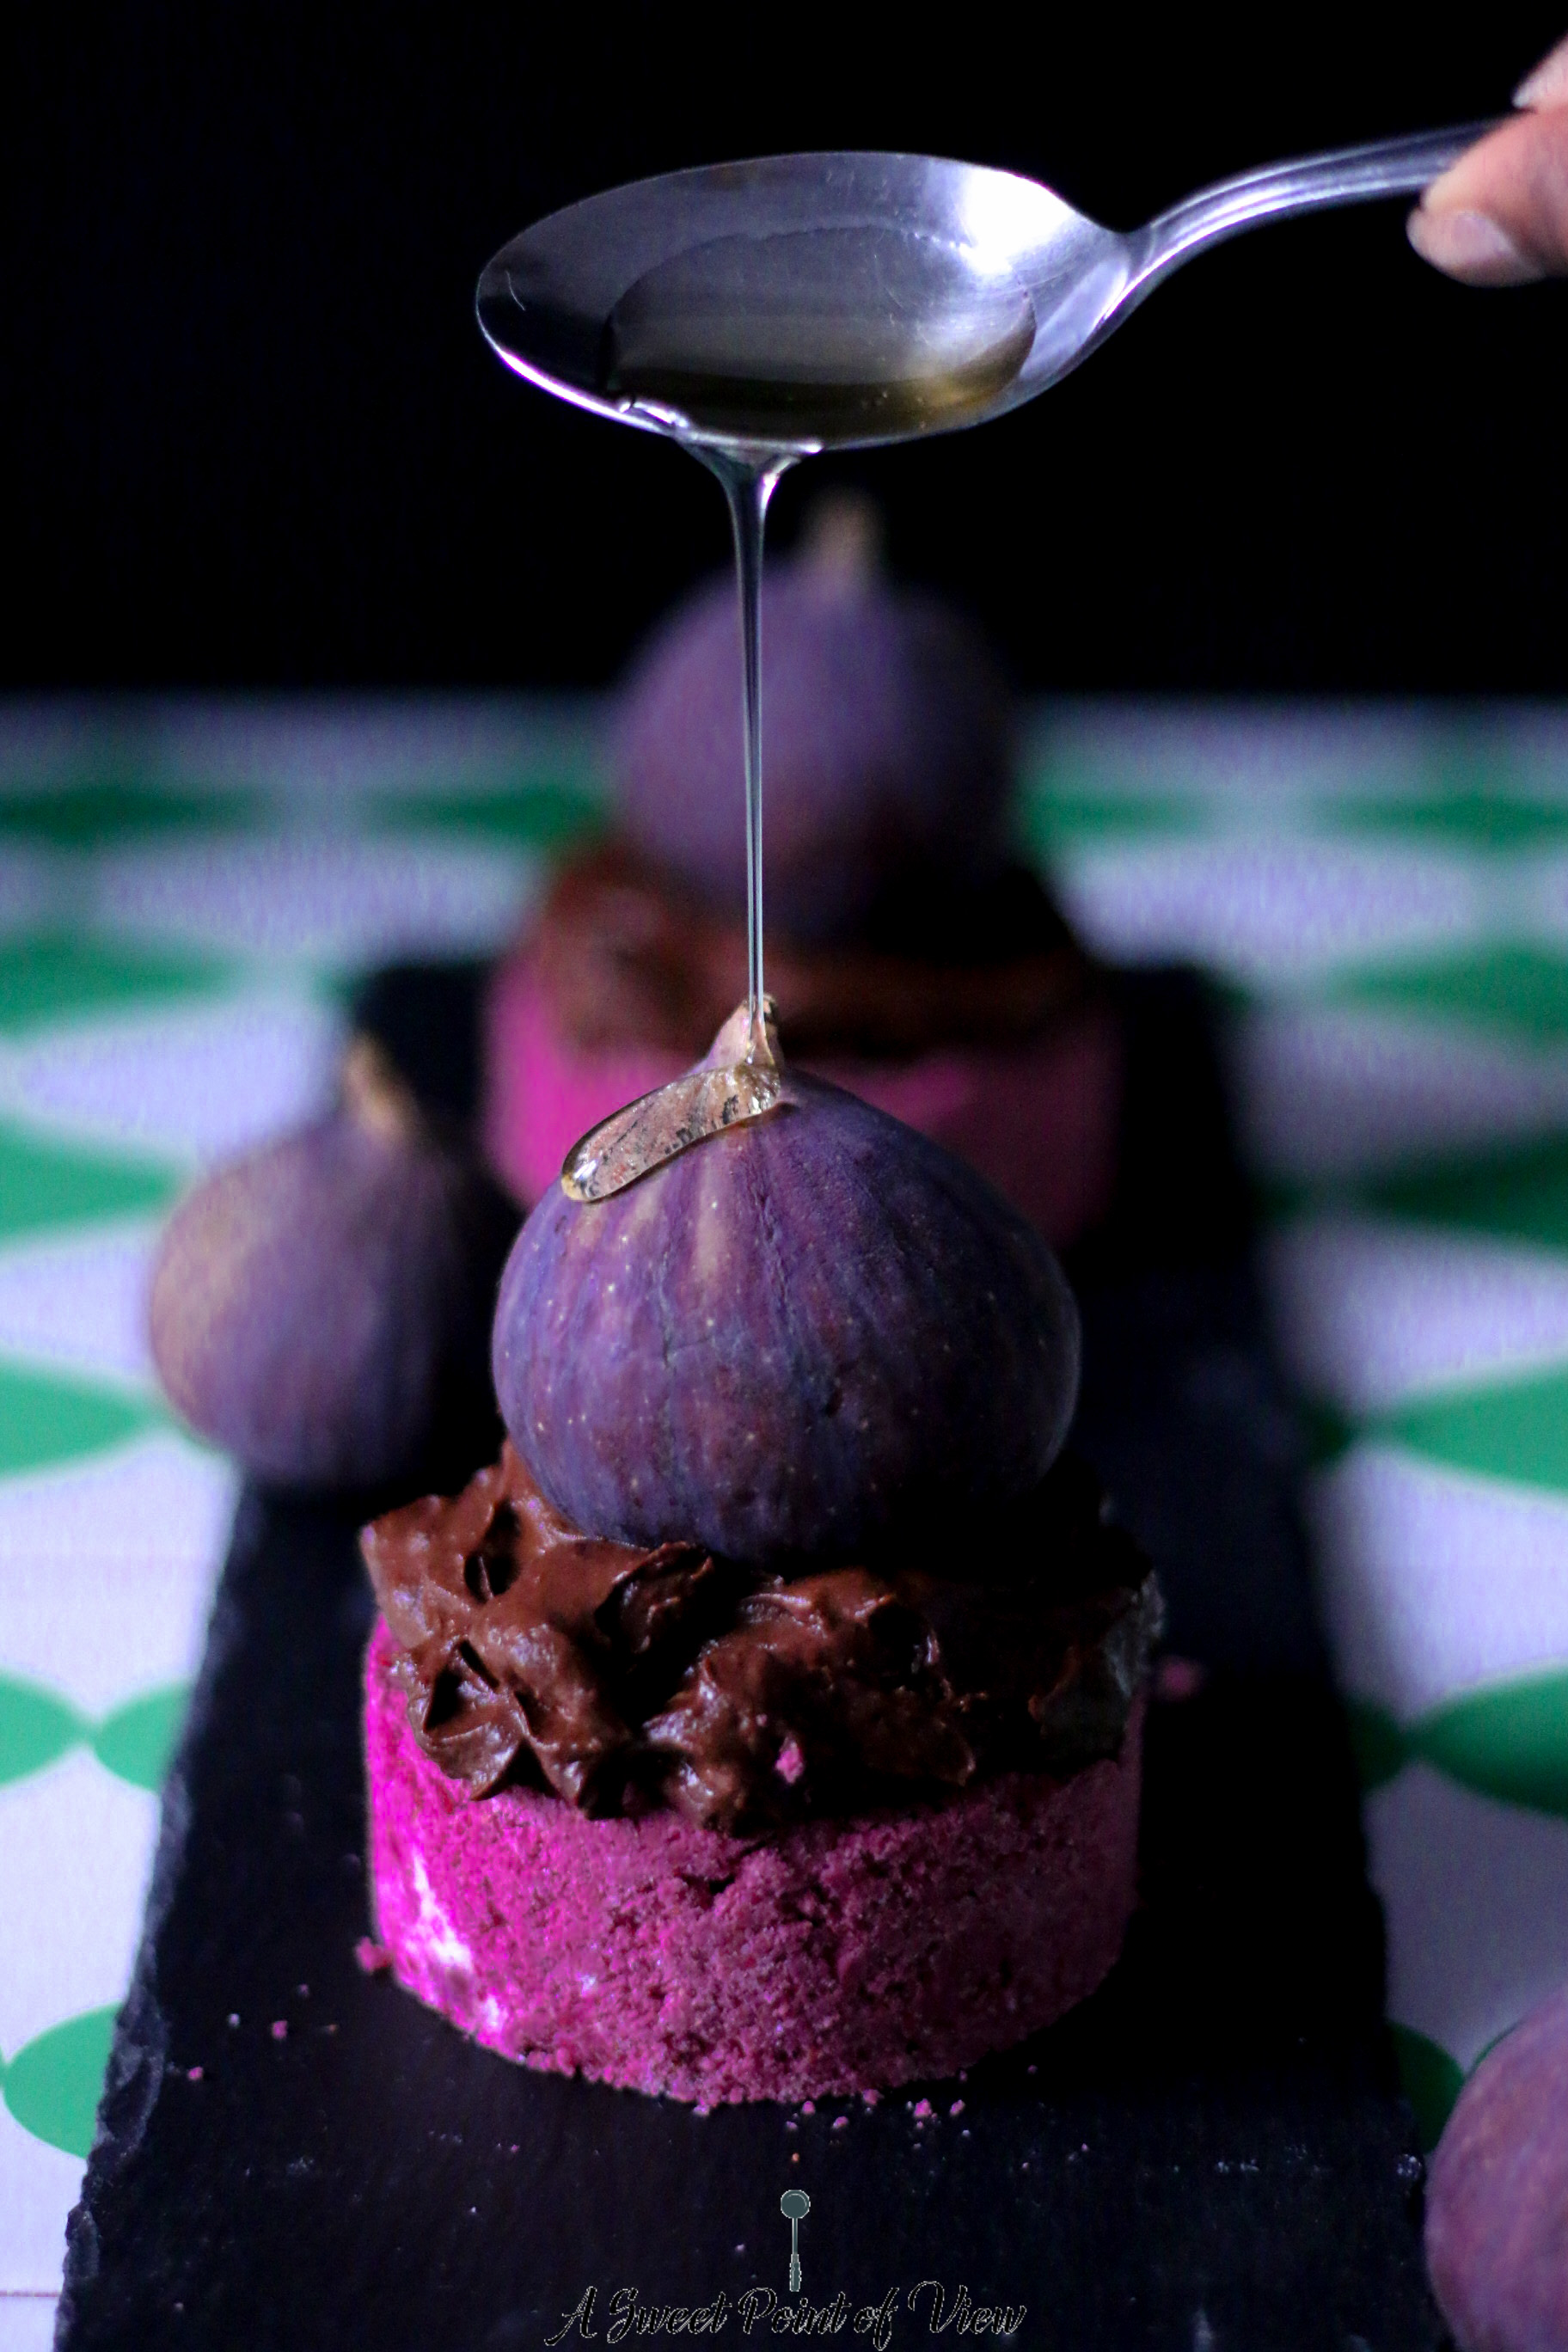 raw-fig-cakes-4-food-photography-melissa-ofoedu-photography-raw-food-a-sweet-point-of-view-1-von-1